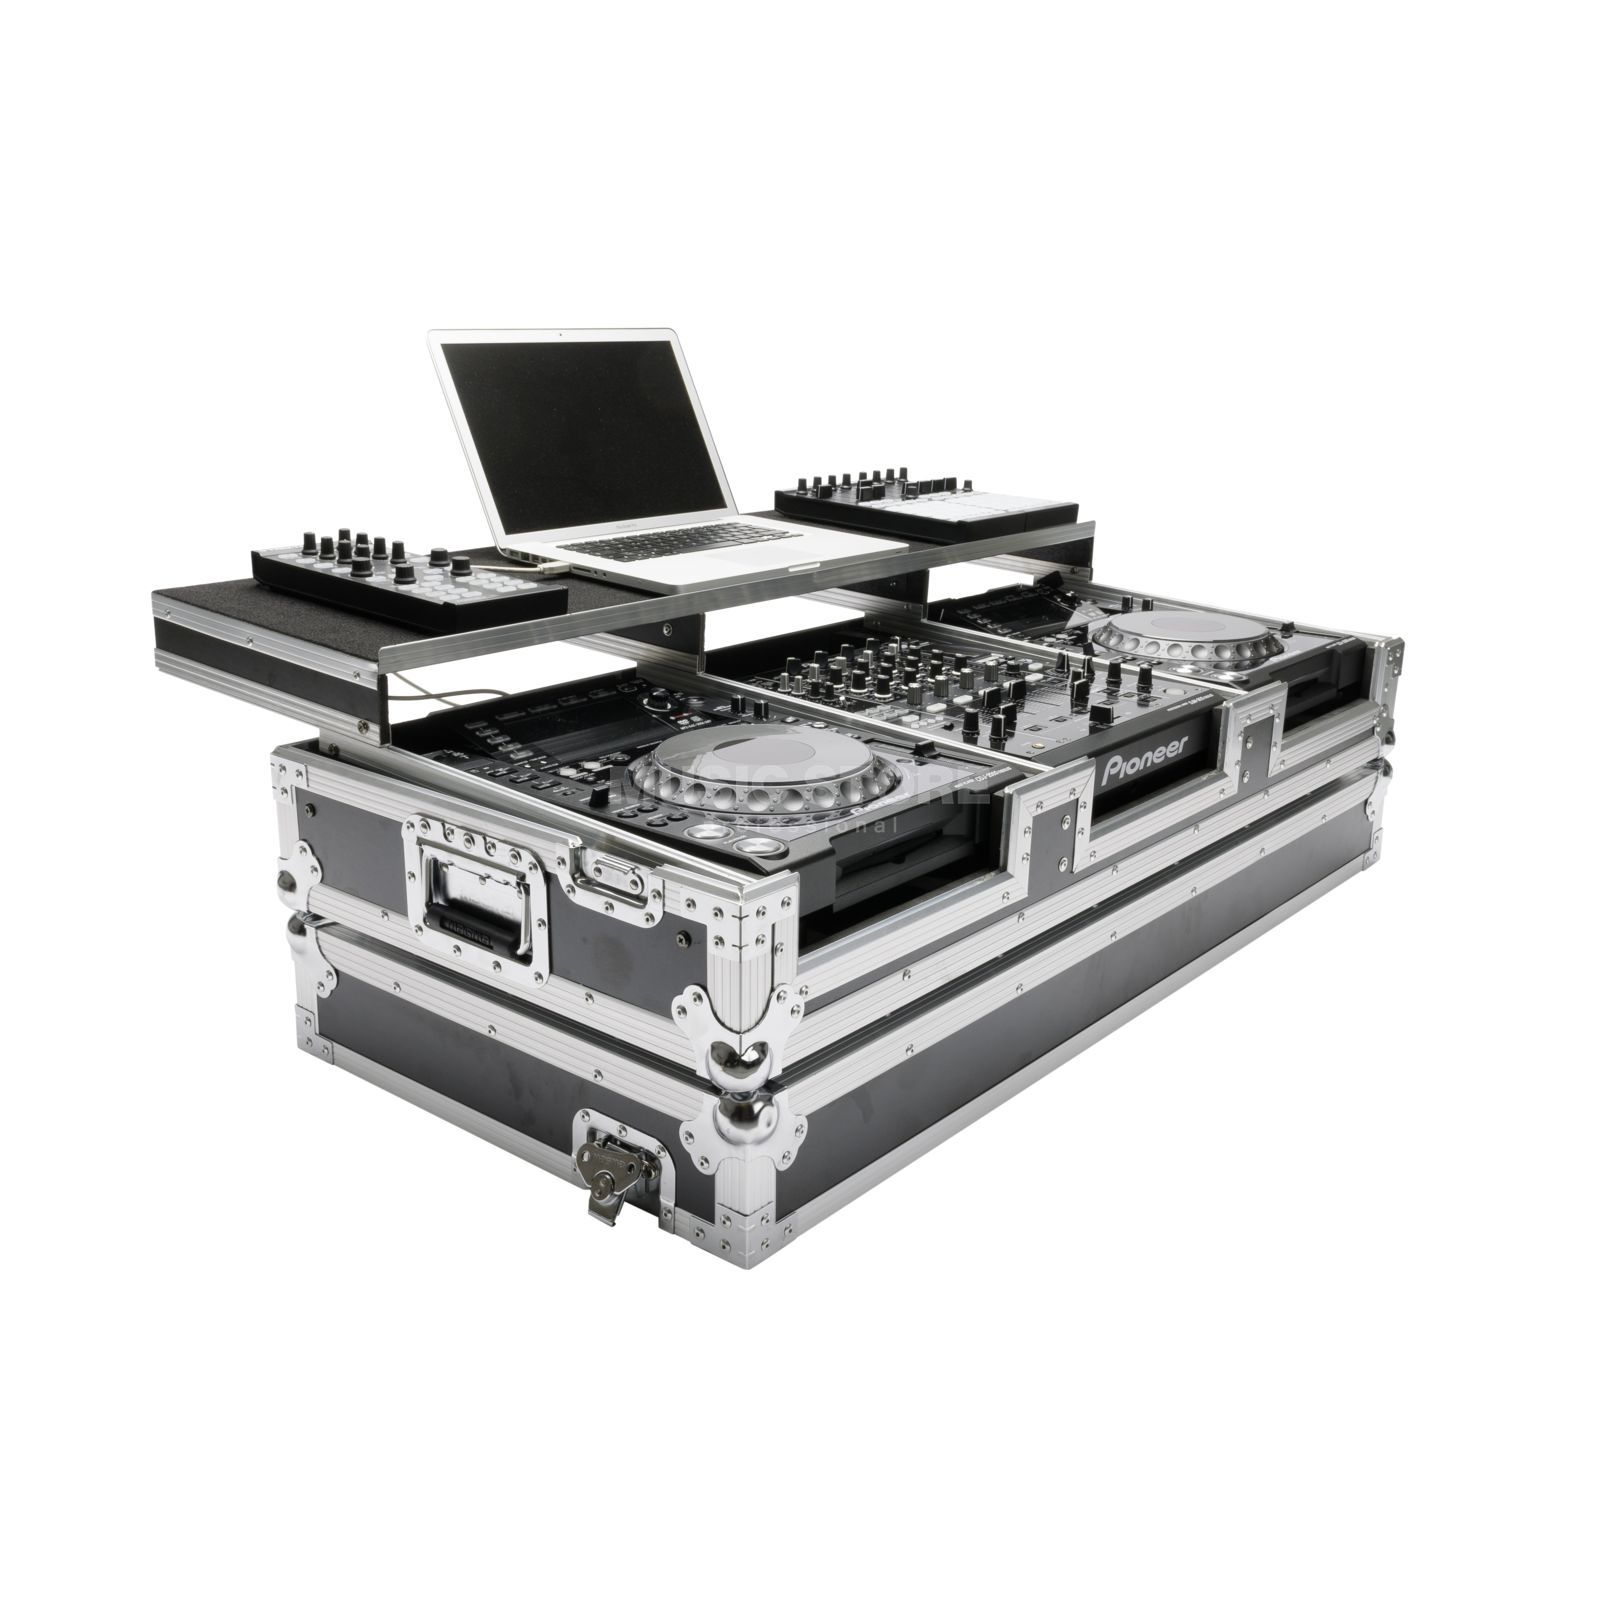 Magma CDJ-Workstation 2000/900 NEXUS  Produktbillede